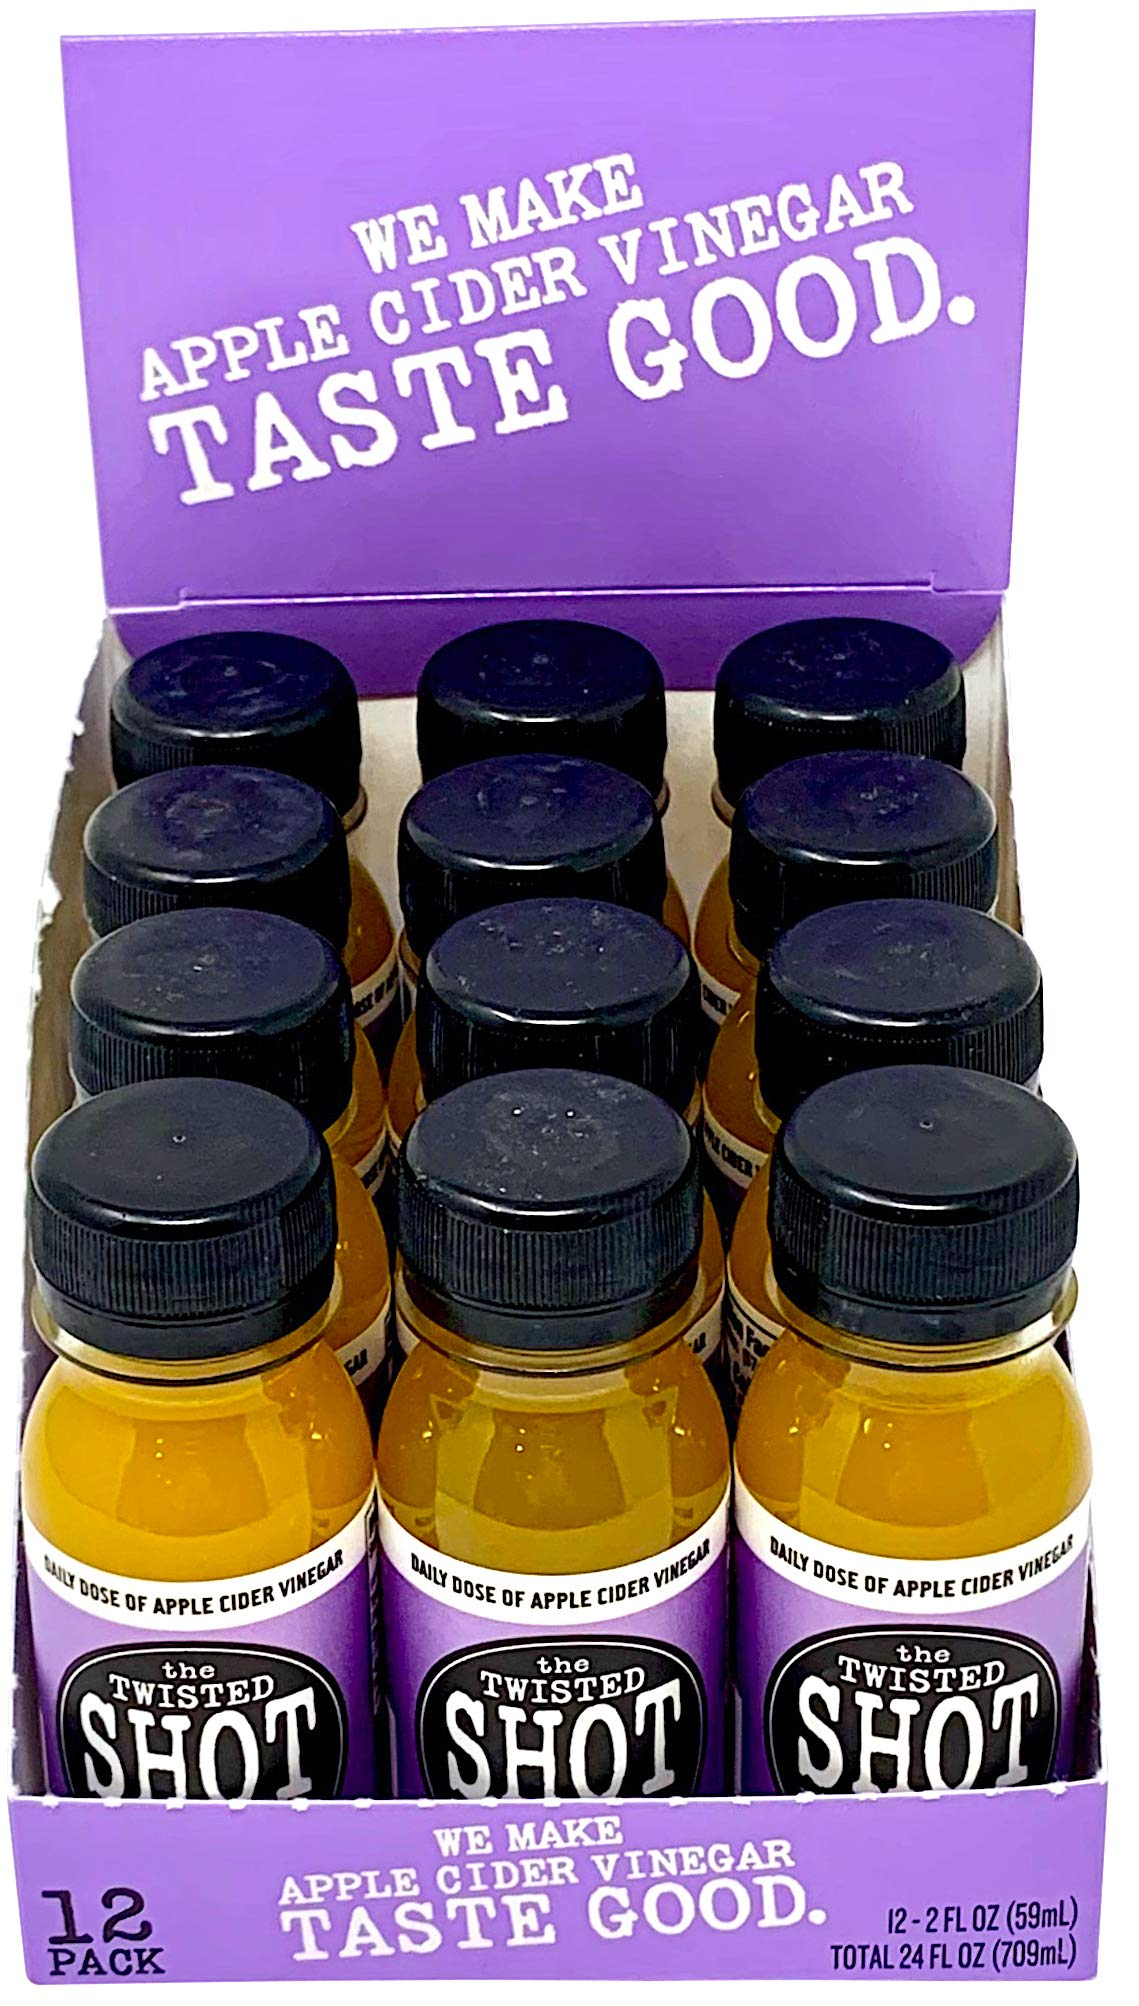 The Twisted Shot - Organic Apple Cider Vinegar shot with Turmeric, Ginger, Cinnamon, Honey & Cayenne - 48-pack of 2oz shots by The Twisted Shrub (Image #6)